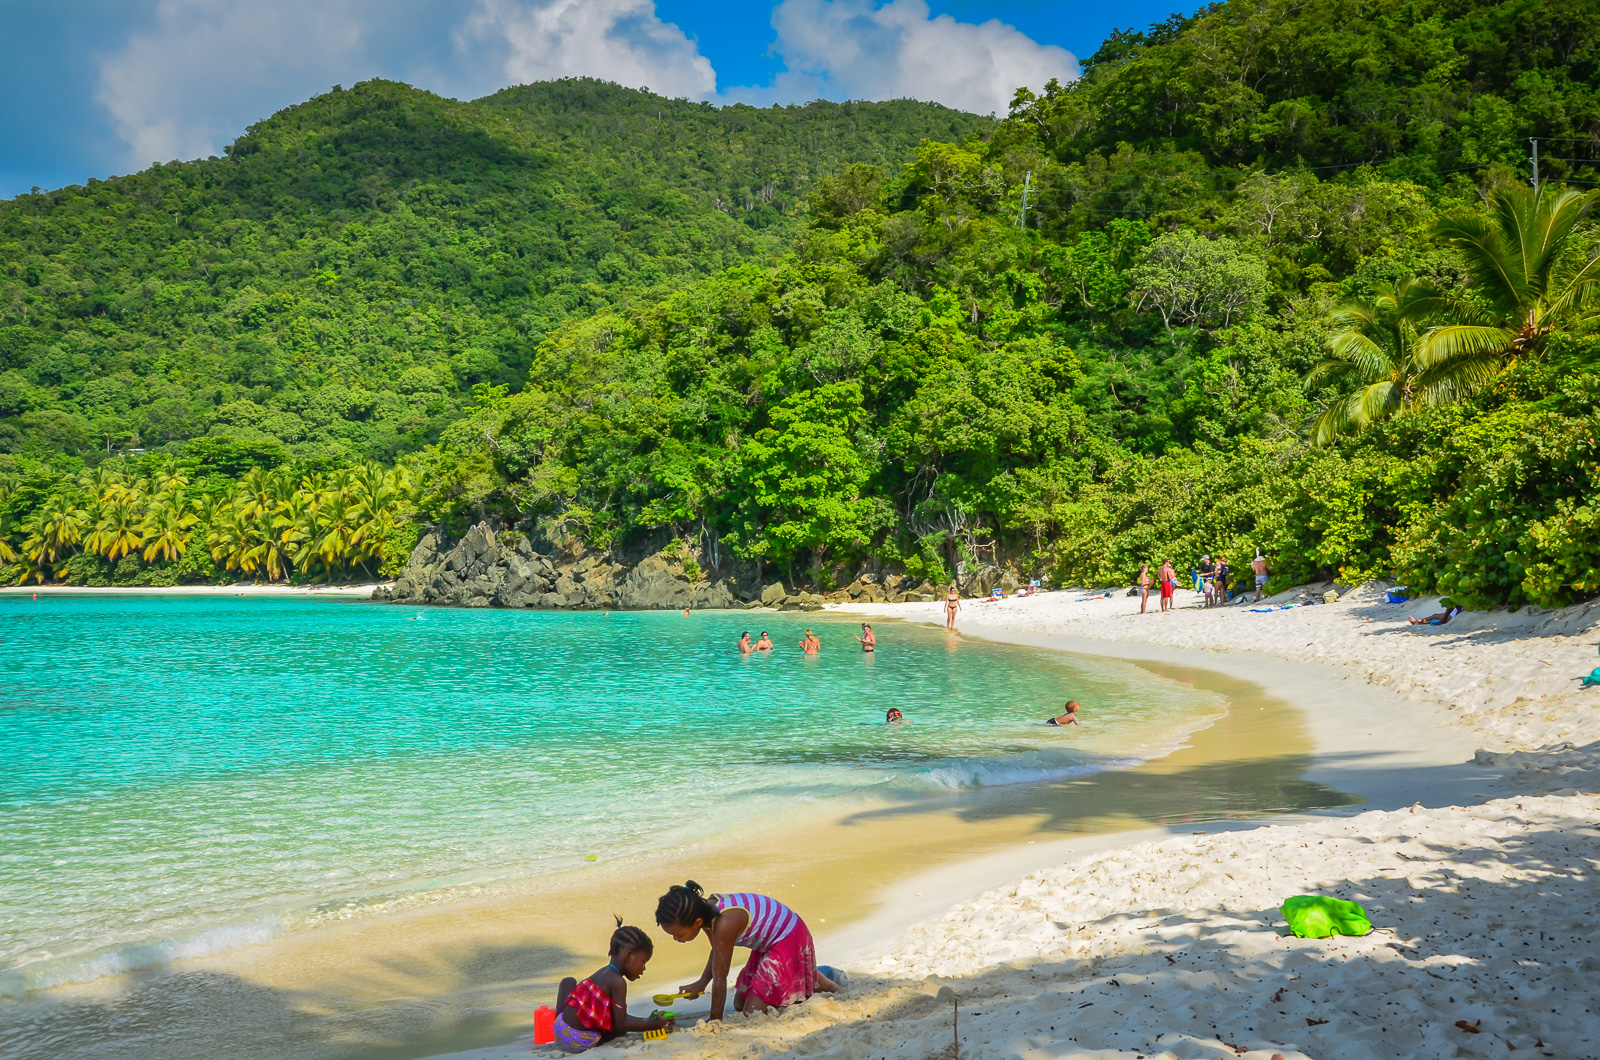 Beautiful-Virgin-Island-Beaches-That-Few-Visitors-Know-but-Locals-Love-12d733c62e6240f9a517b40e52fad86a.jpg